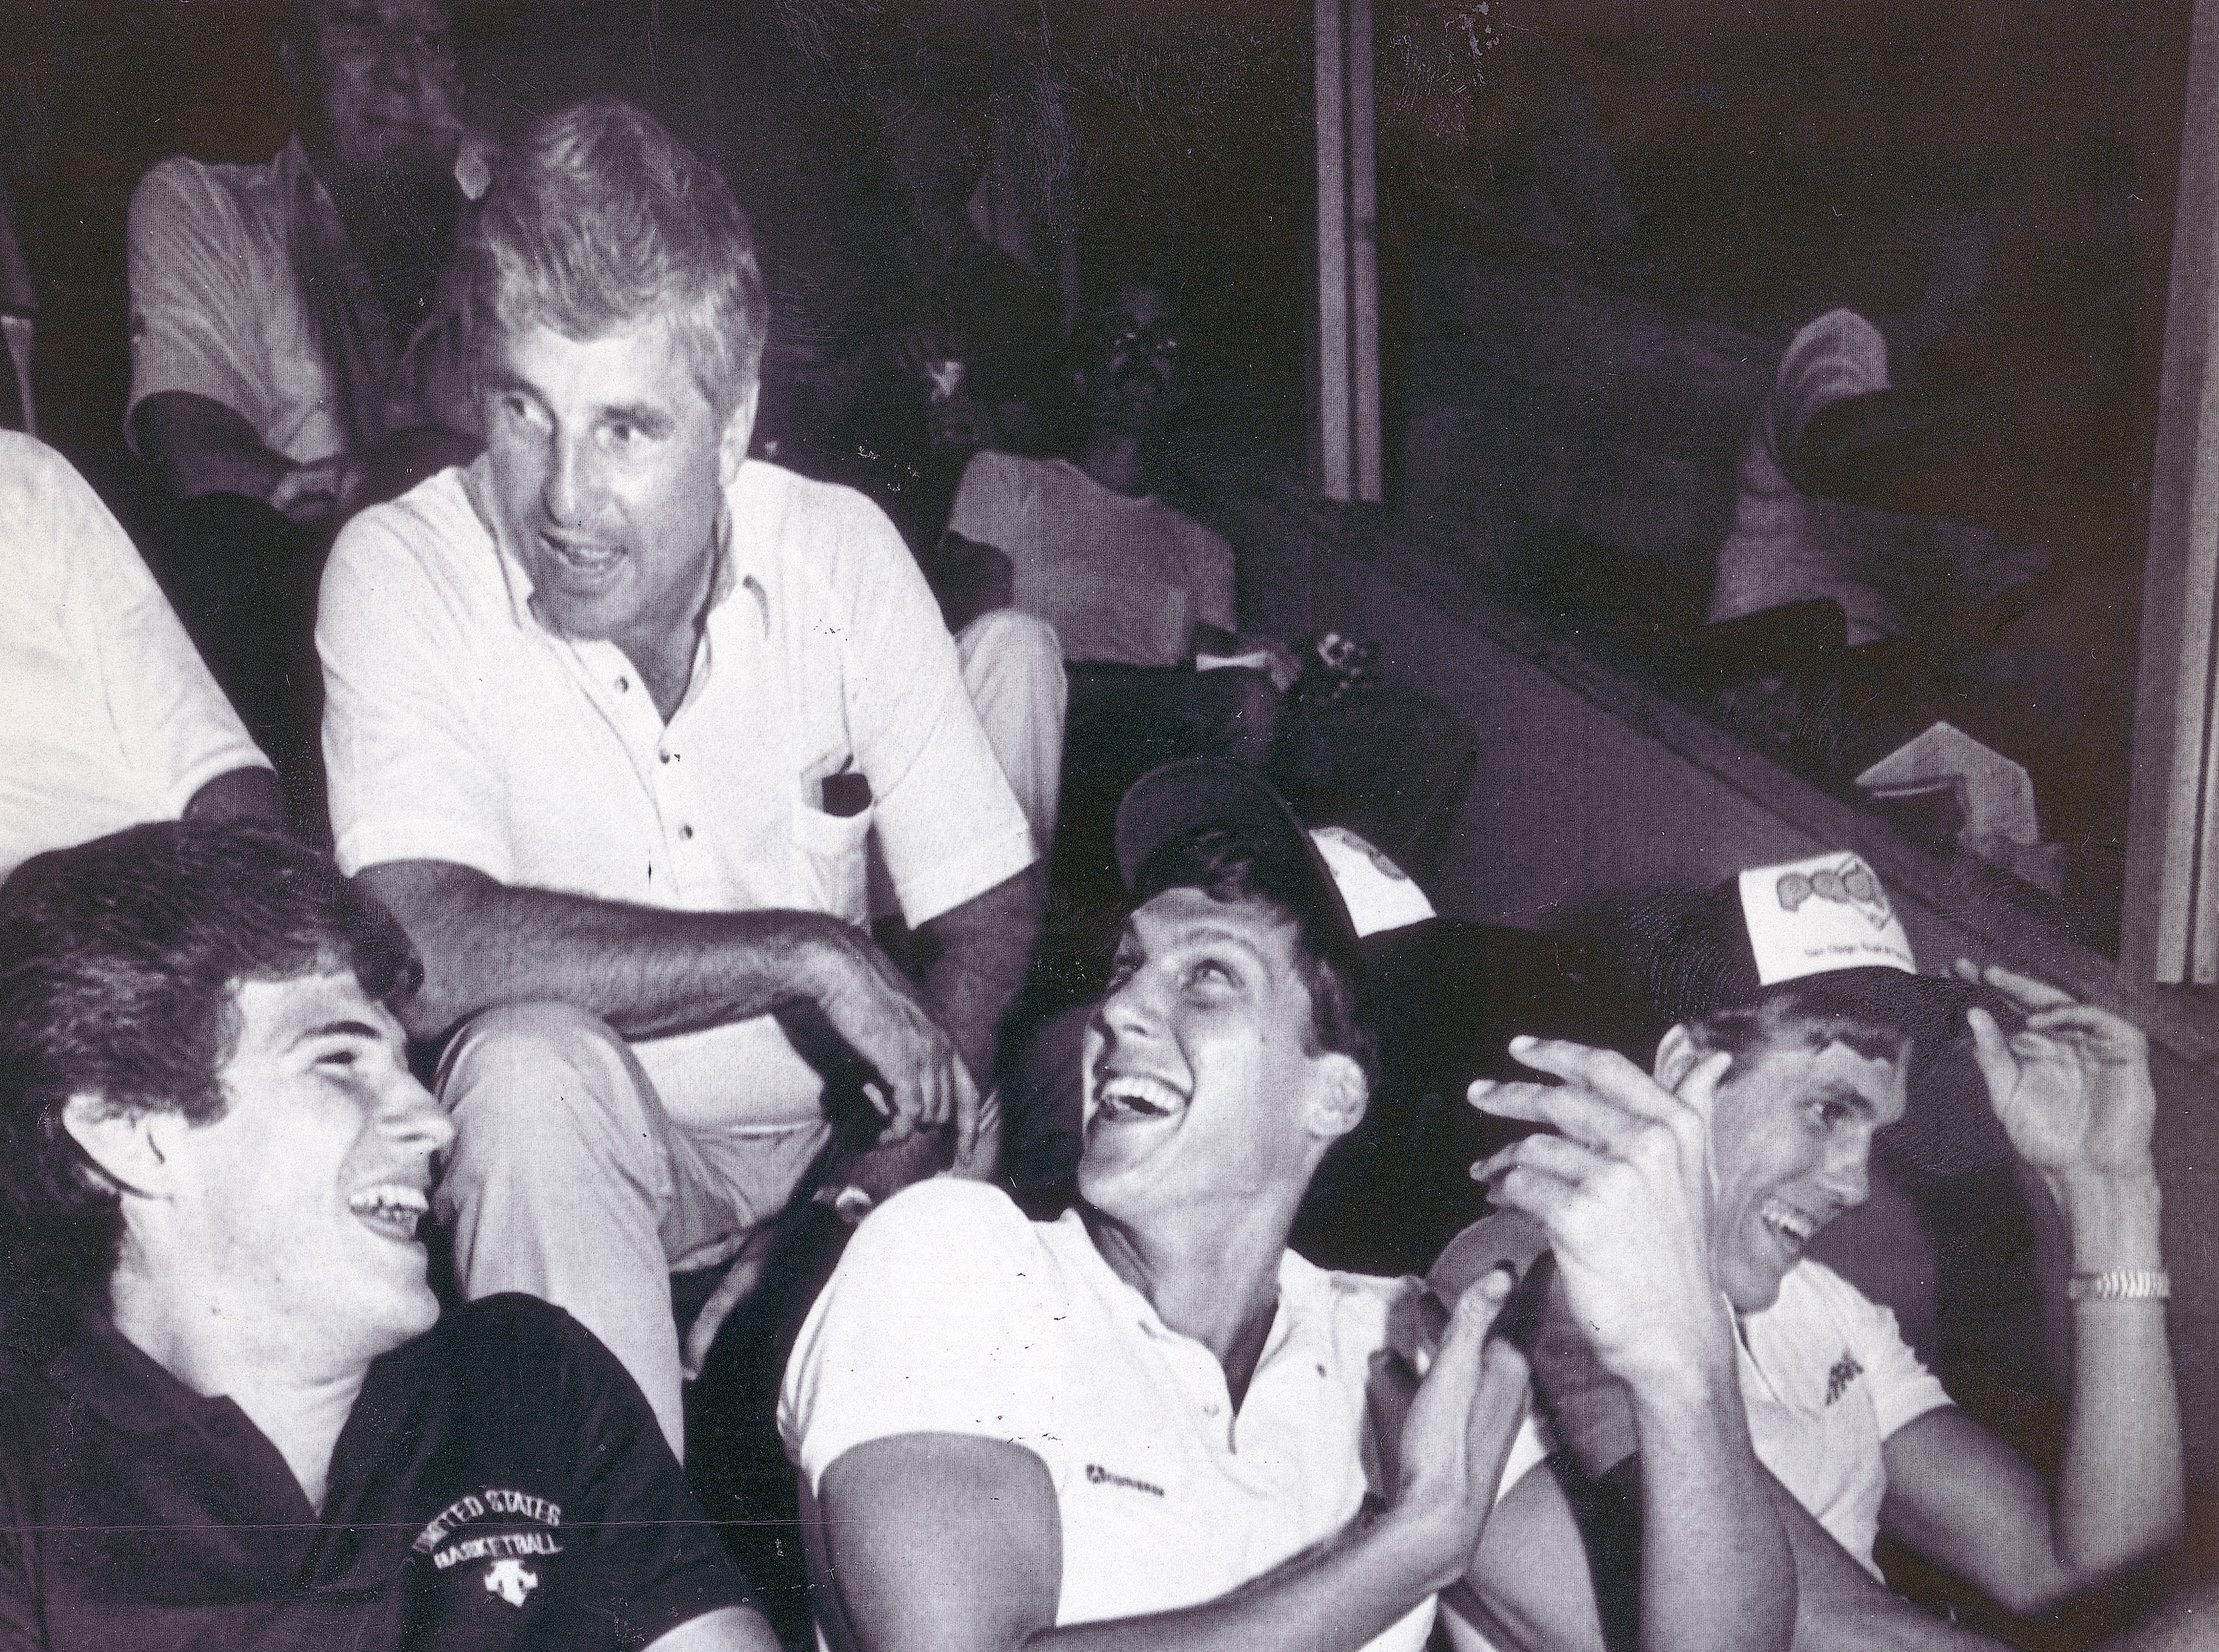 Olympic basketball coach Bob Knight (back) jokes with team members (from left) Steve Alford, Jeff turner and Jon Koncak.  July 24, 1984